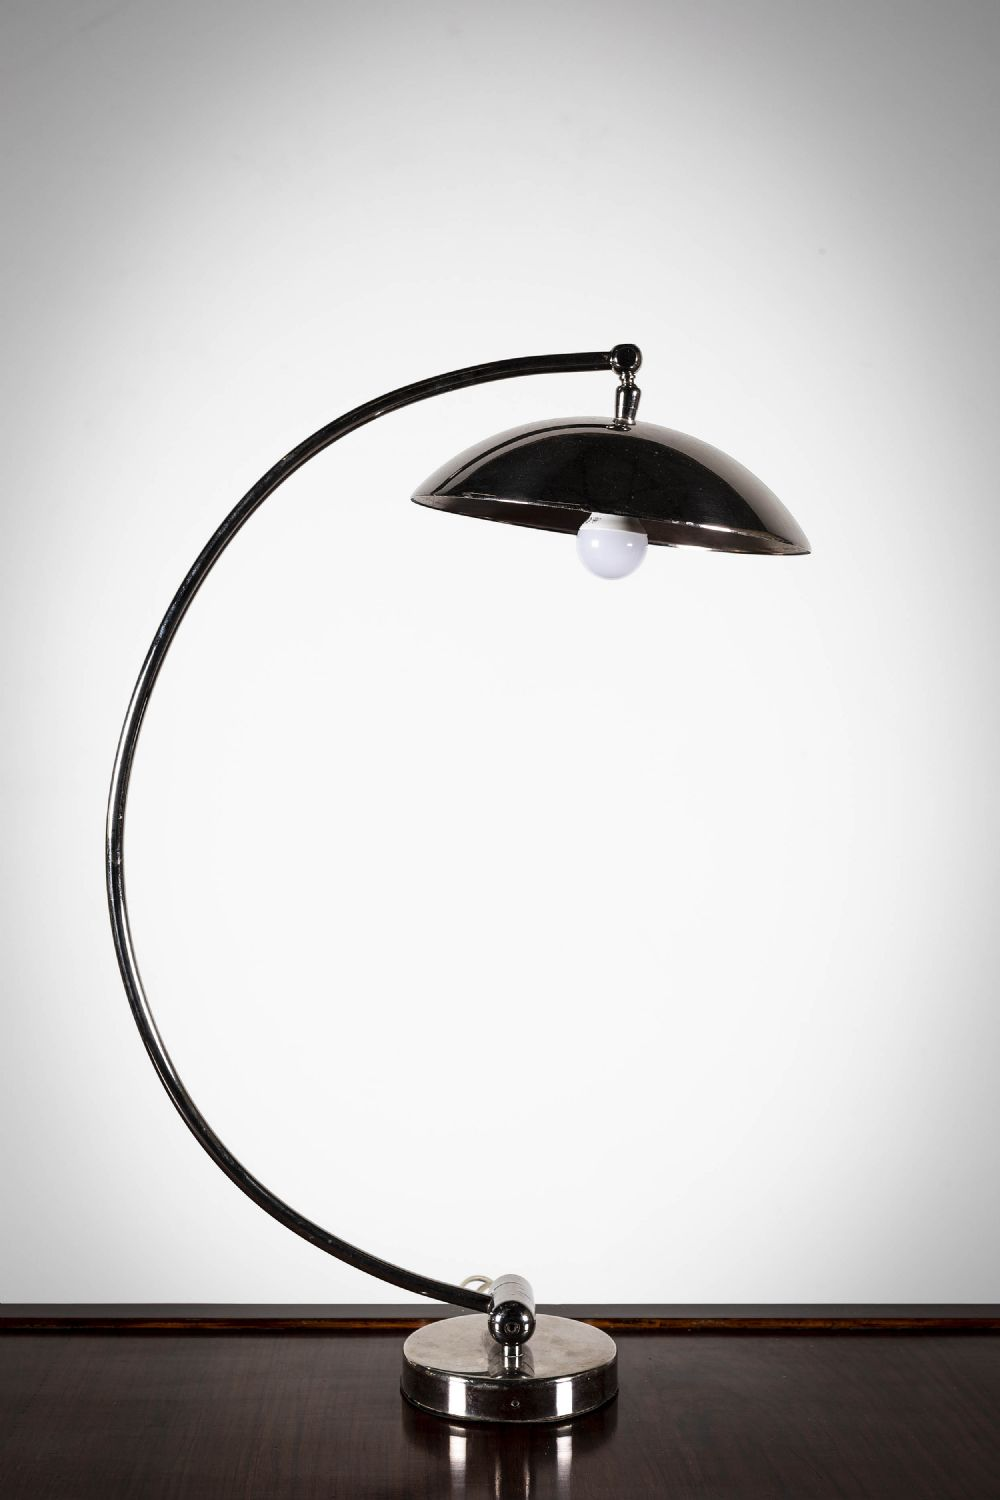 A CHROME ARCHED DESK	LAMP